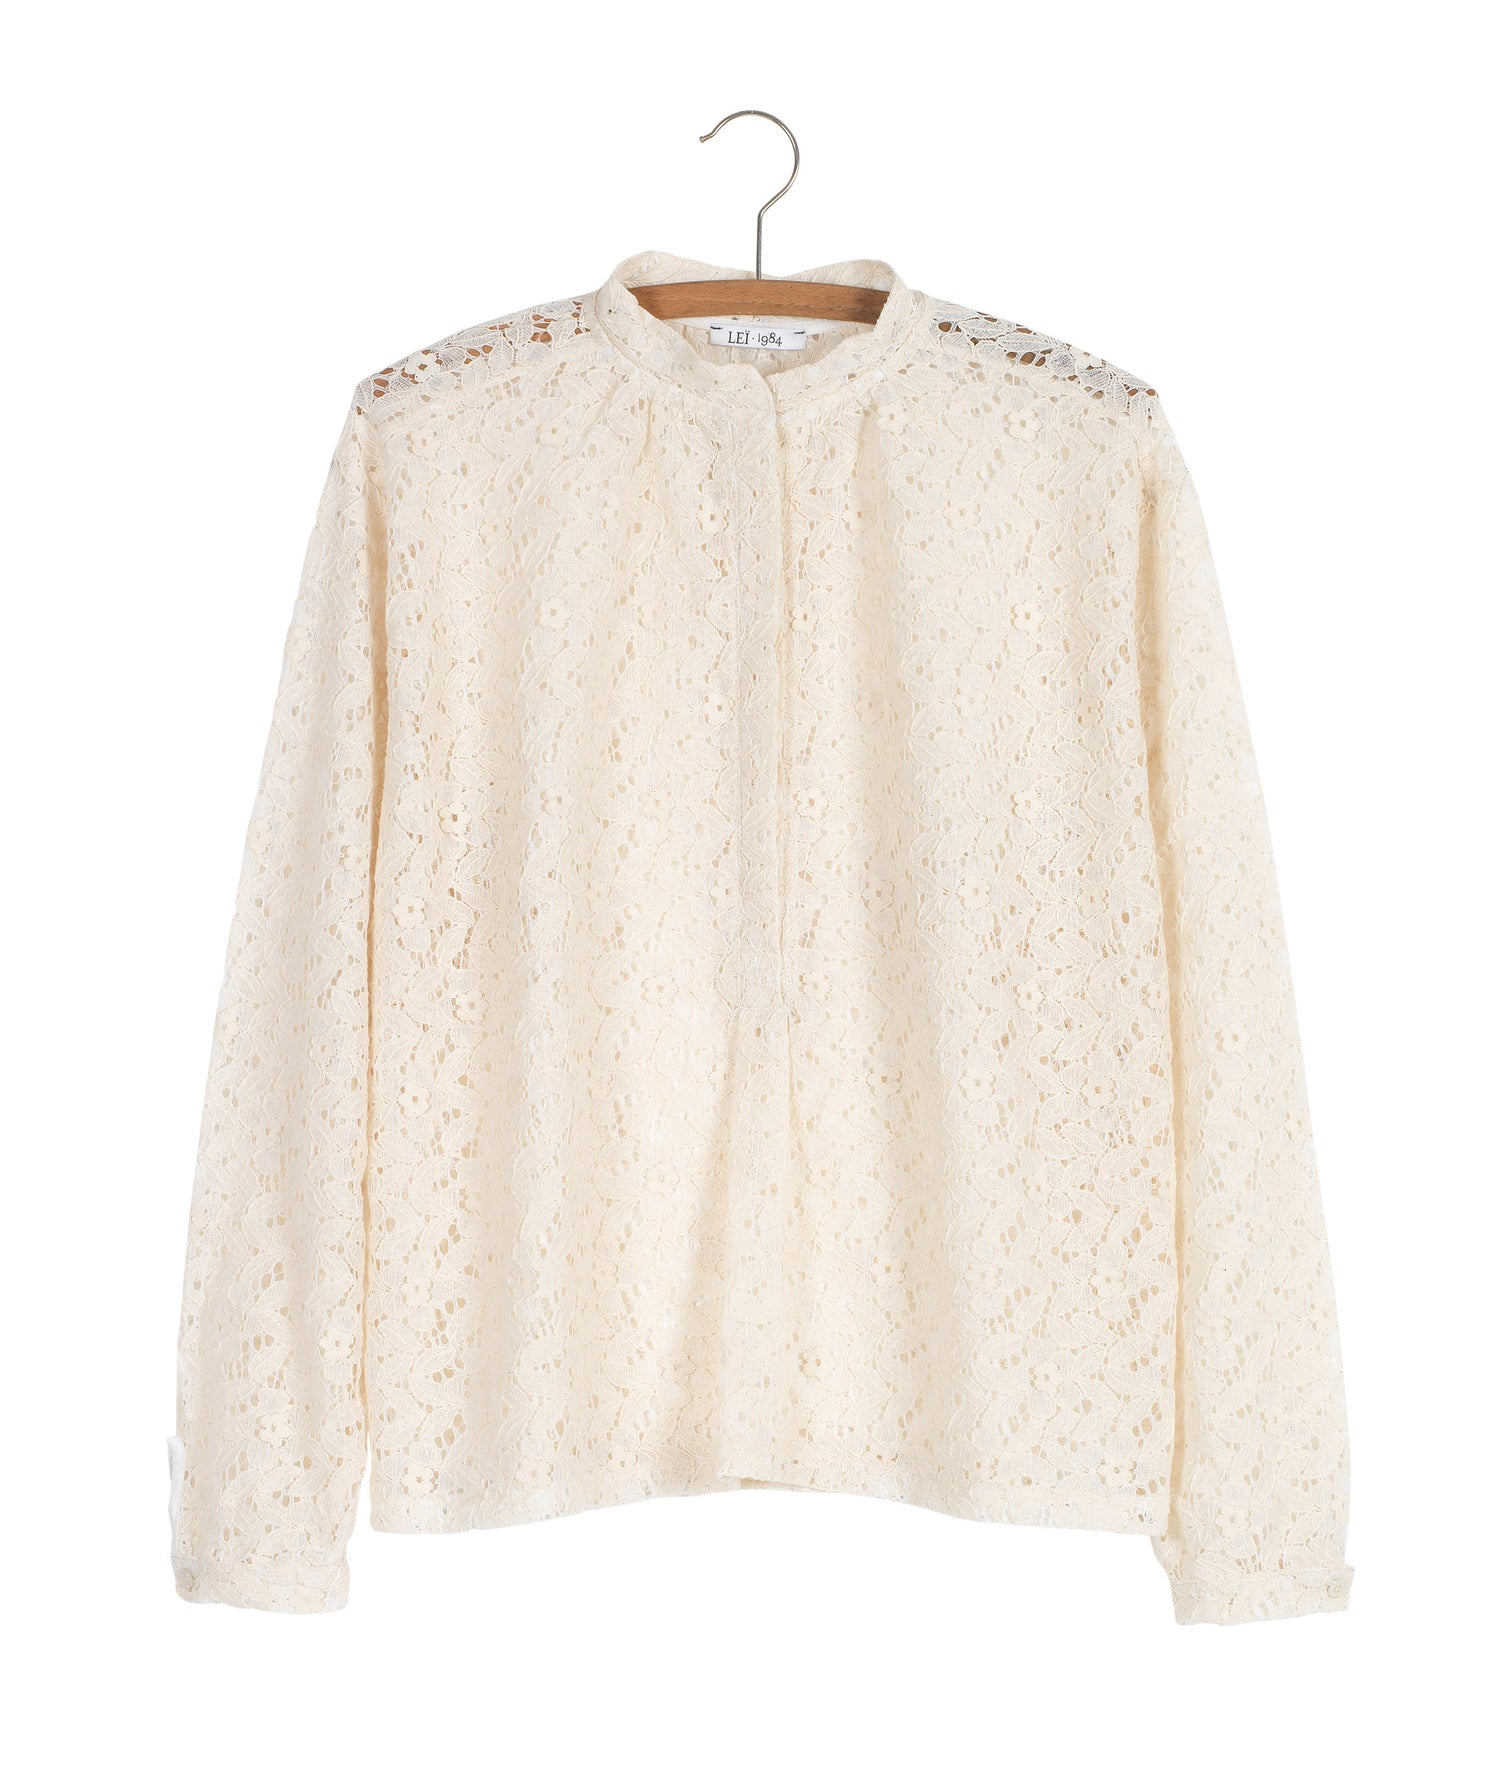 Image of Blouse dentelle APOLLINE 125€ -50%